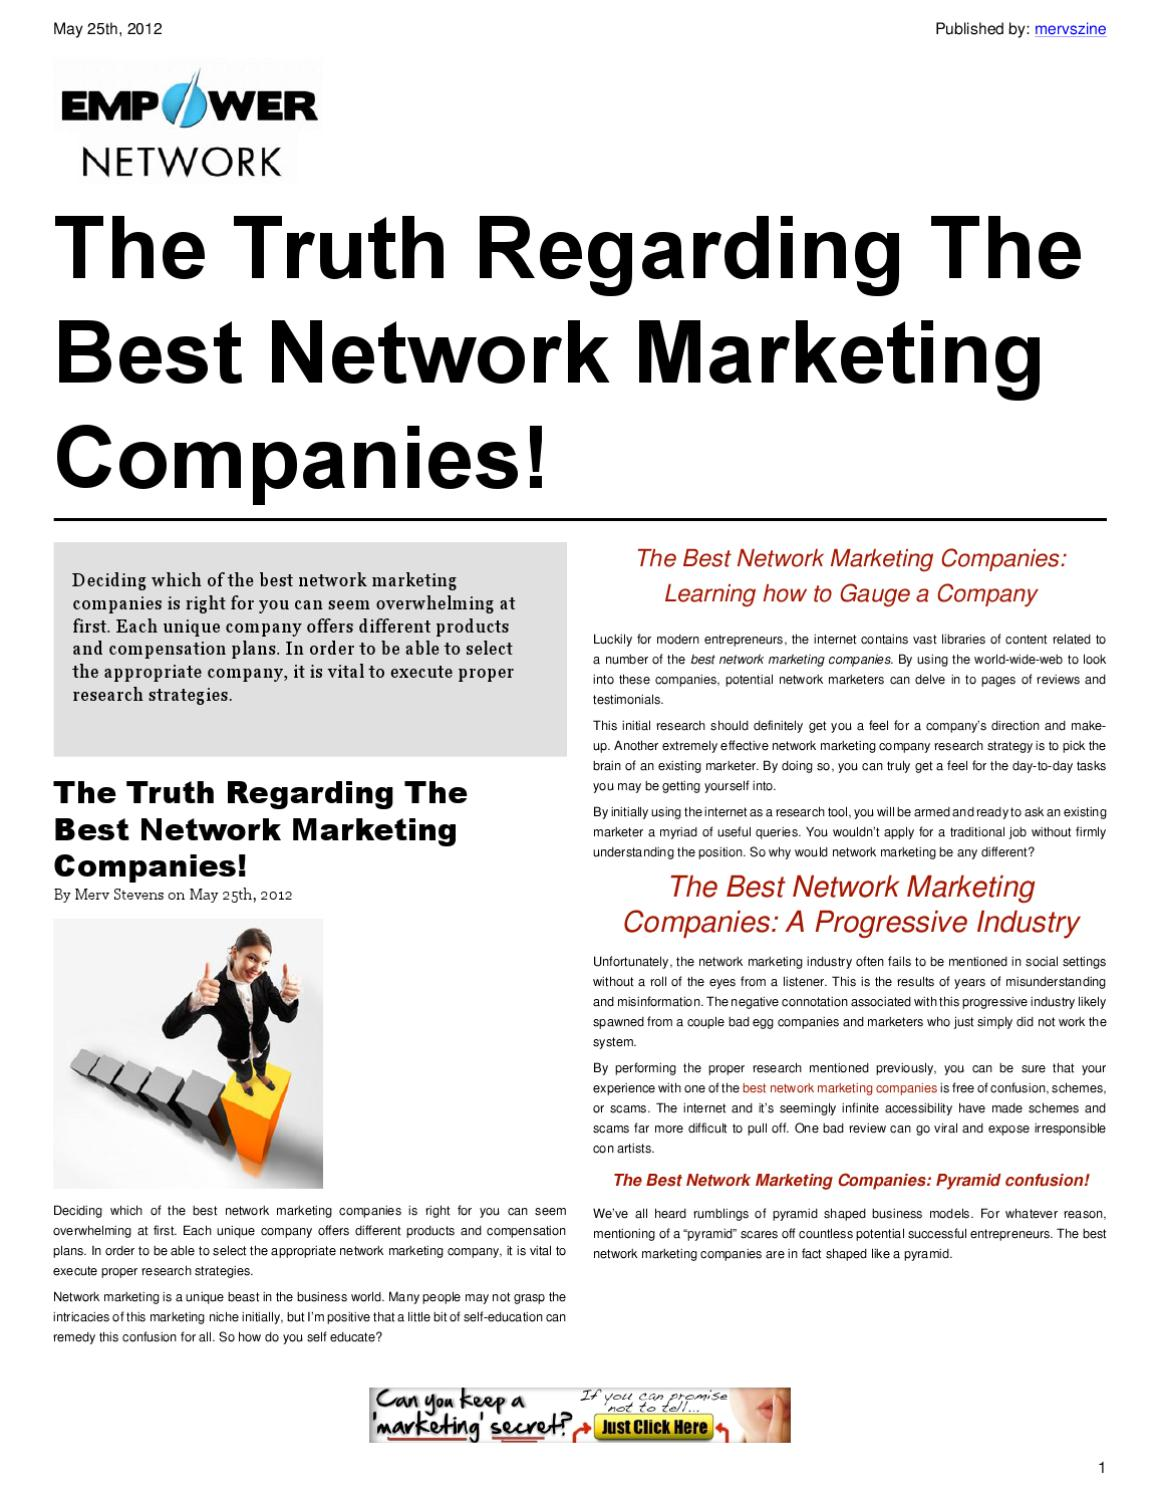 The truth regarding the best network marketing companies for Marketing to builders